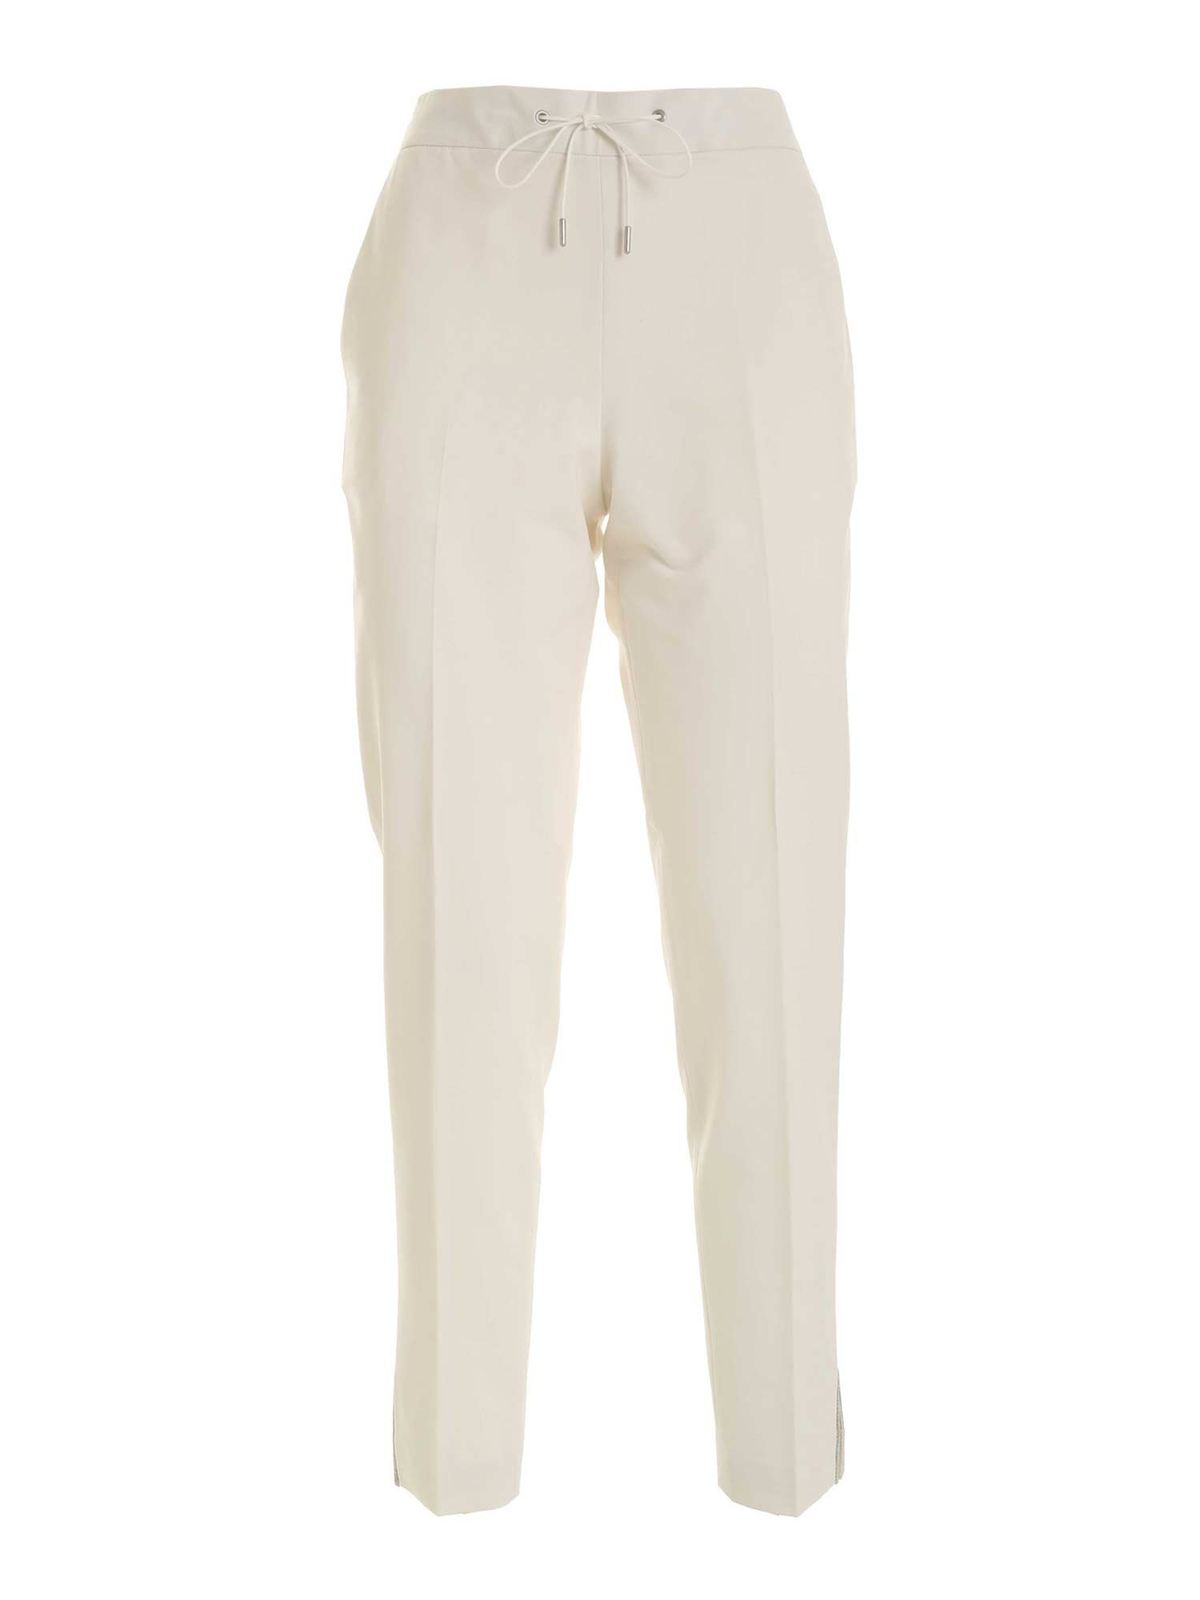 Fabiana Filippi MICRO BEADS PANTS IN CREAM COLOR